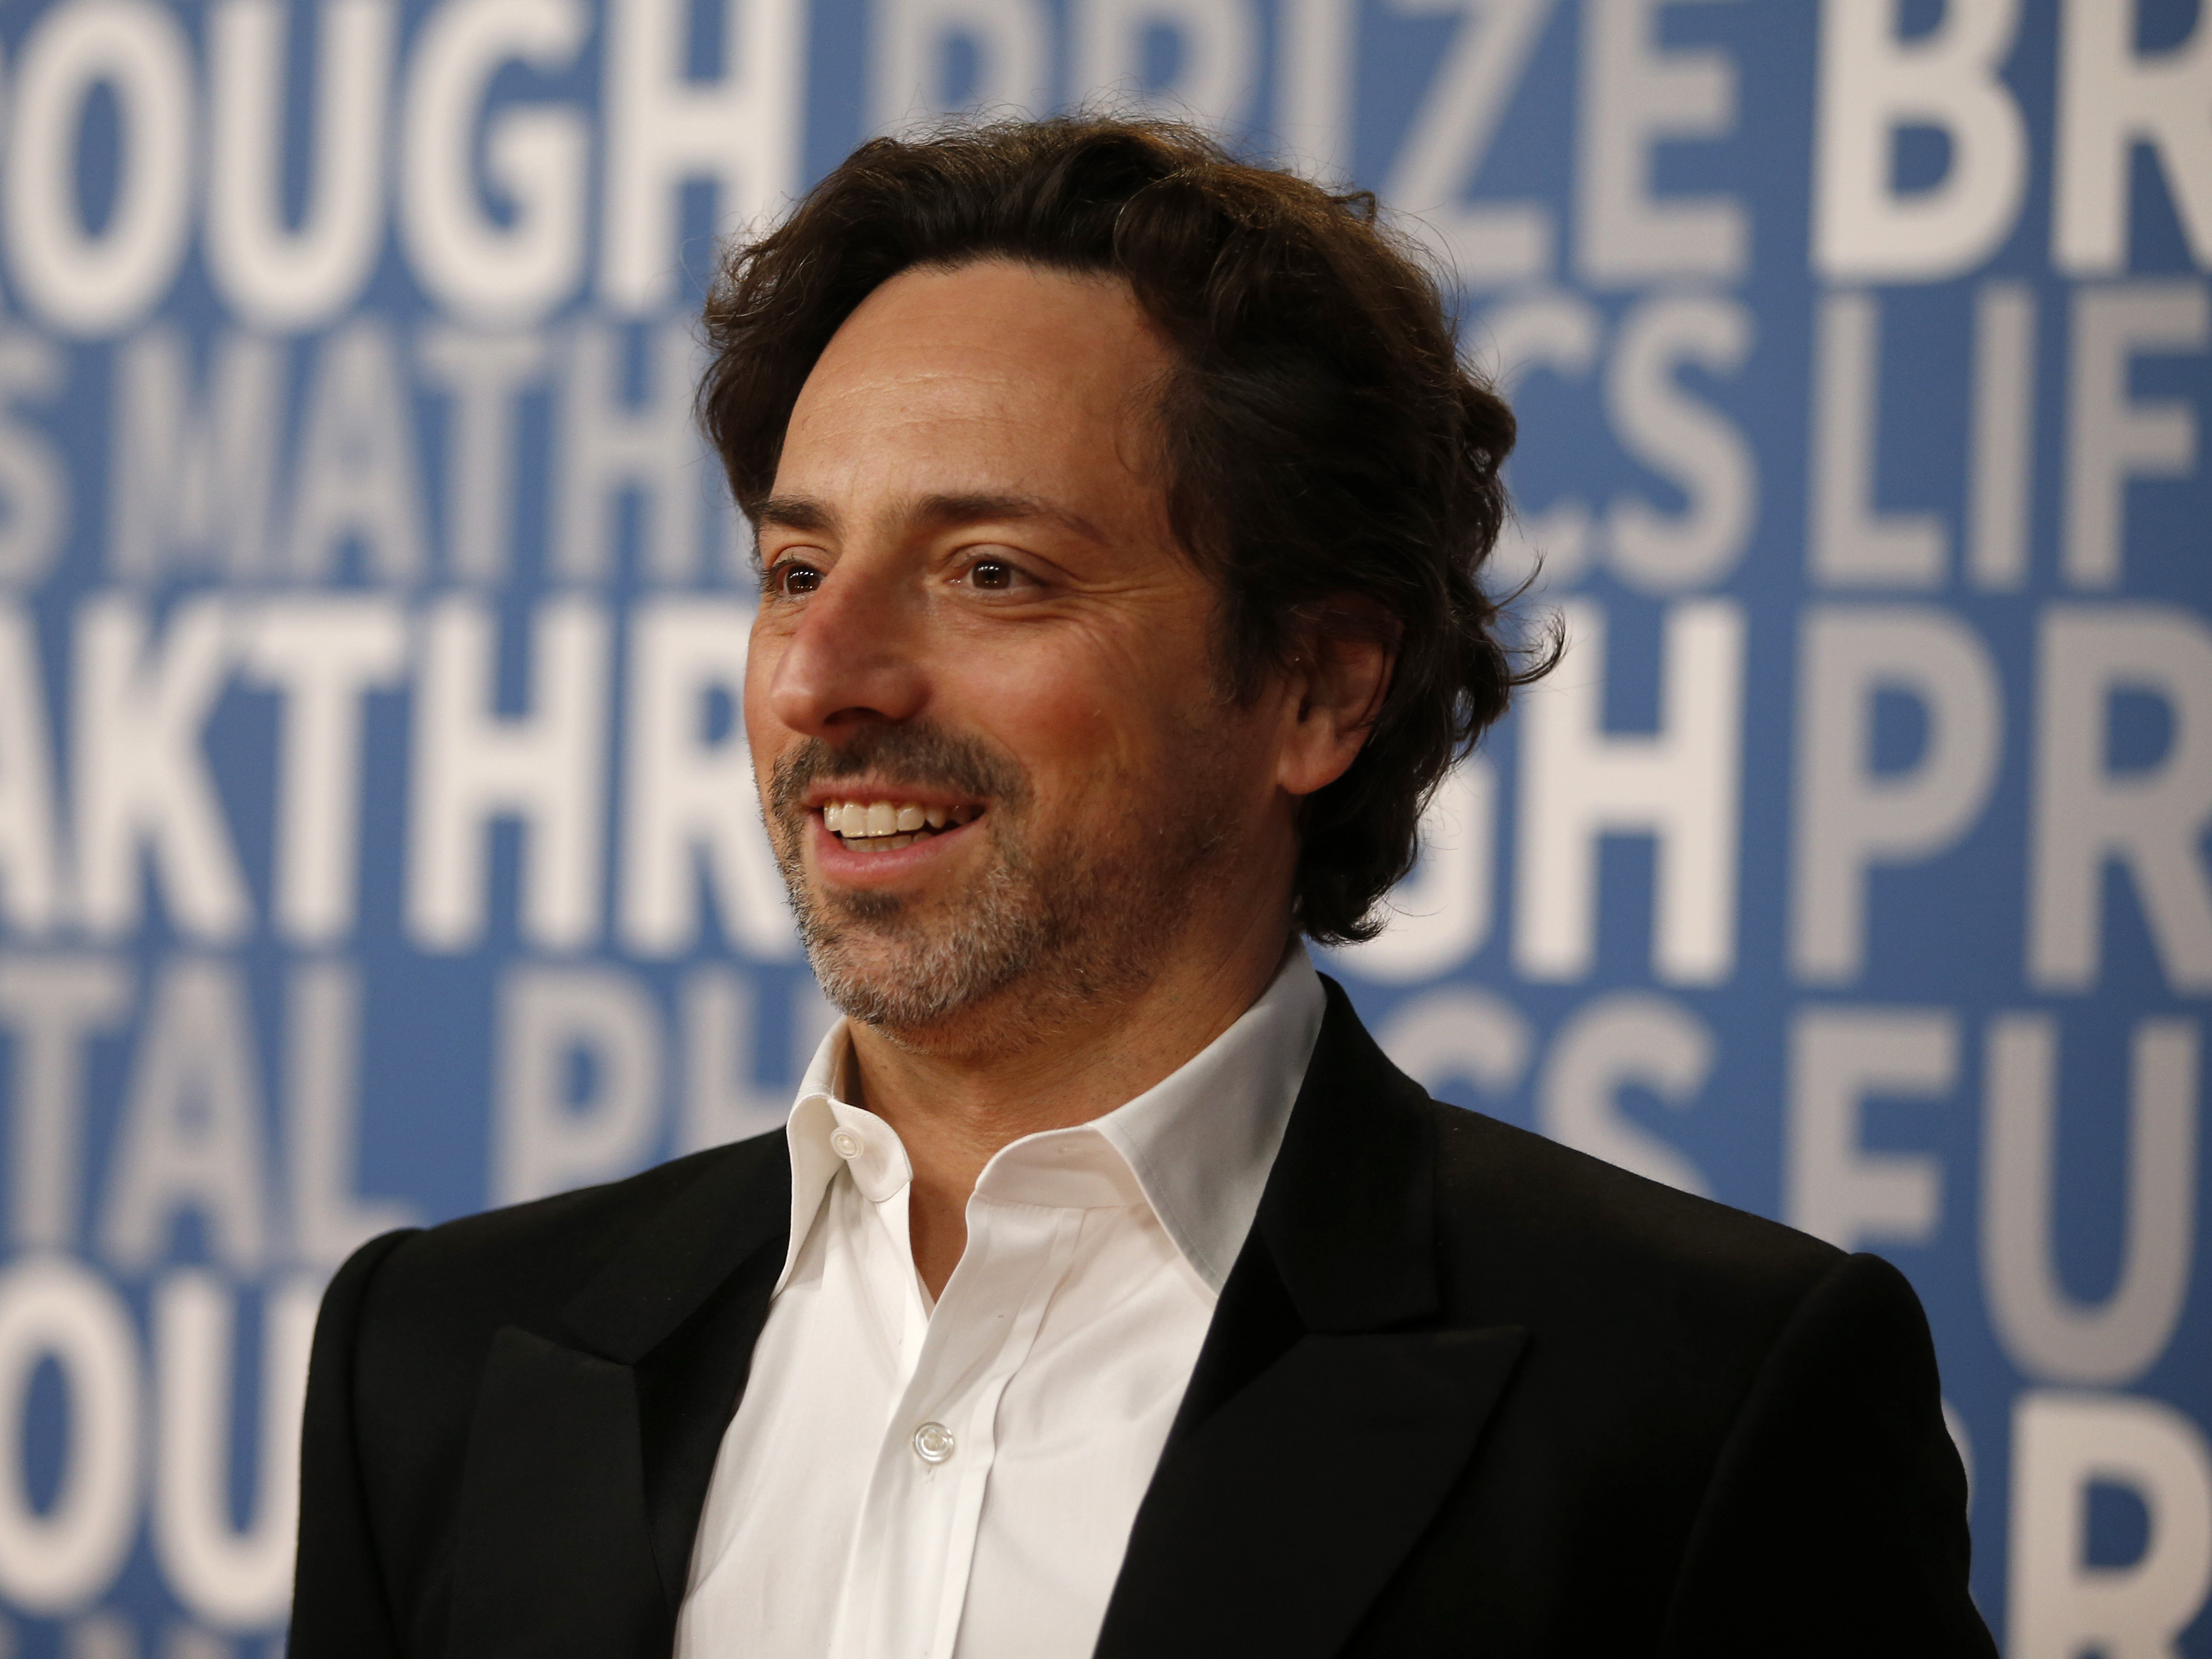 Sergey Brin poses for a picture on the red carpet for the 6th annual 2018 Breakthrough Prizes at Moffett Federal Airfield, Hangar One in Mountain View, Calif.,